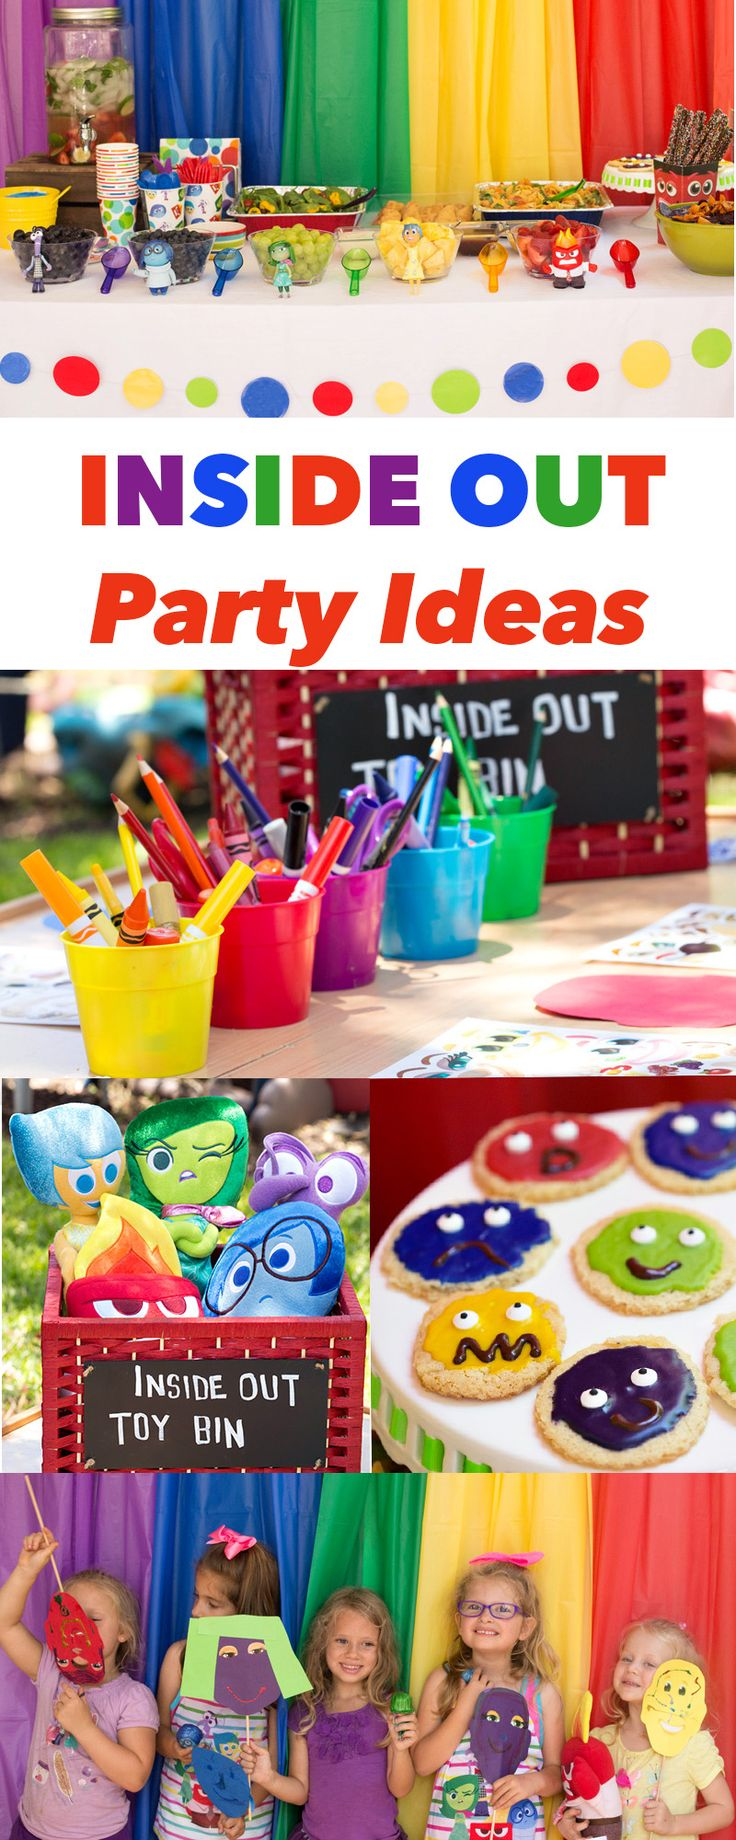 Inside Out Party Ideas #InsideOutEmotions ad